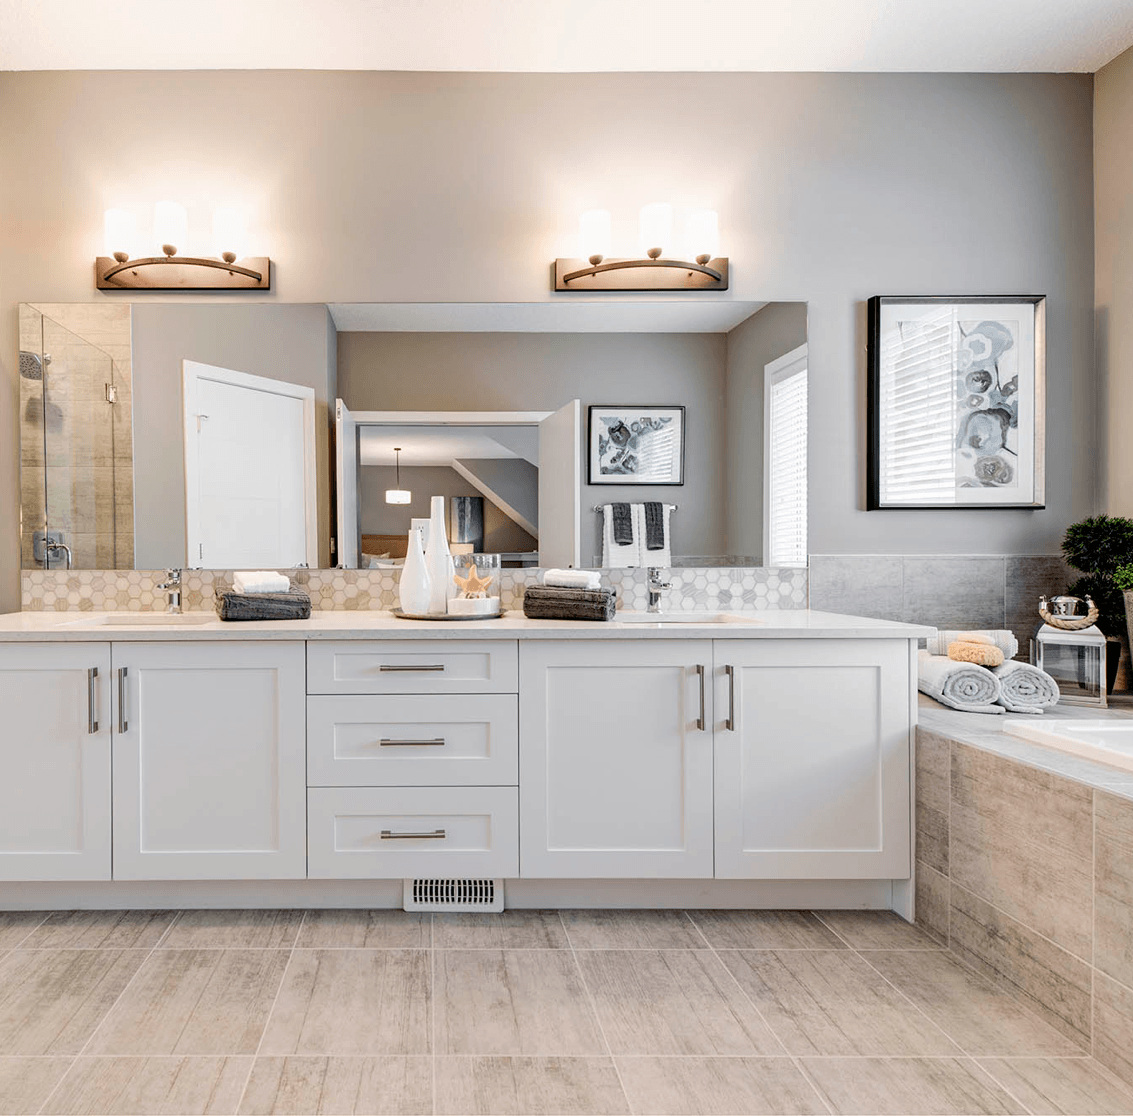 Showhome 101: Seeing Past the Décor Main Ensuite Image